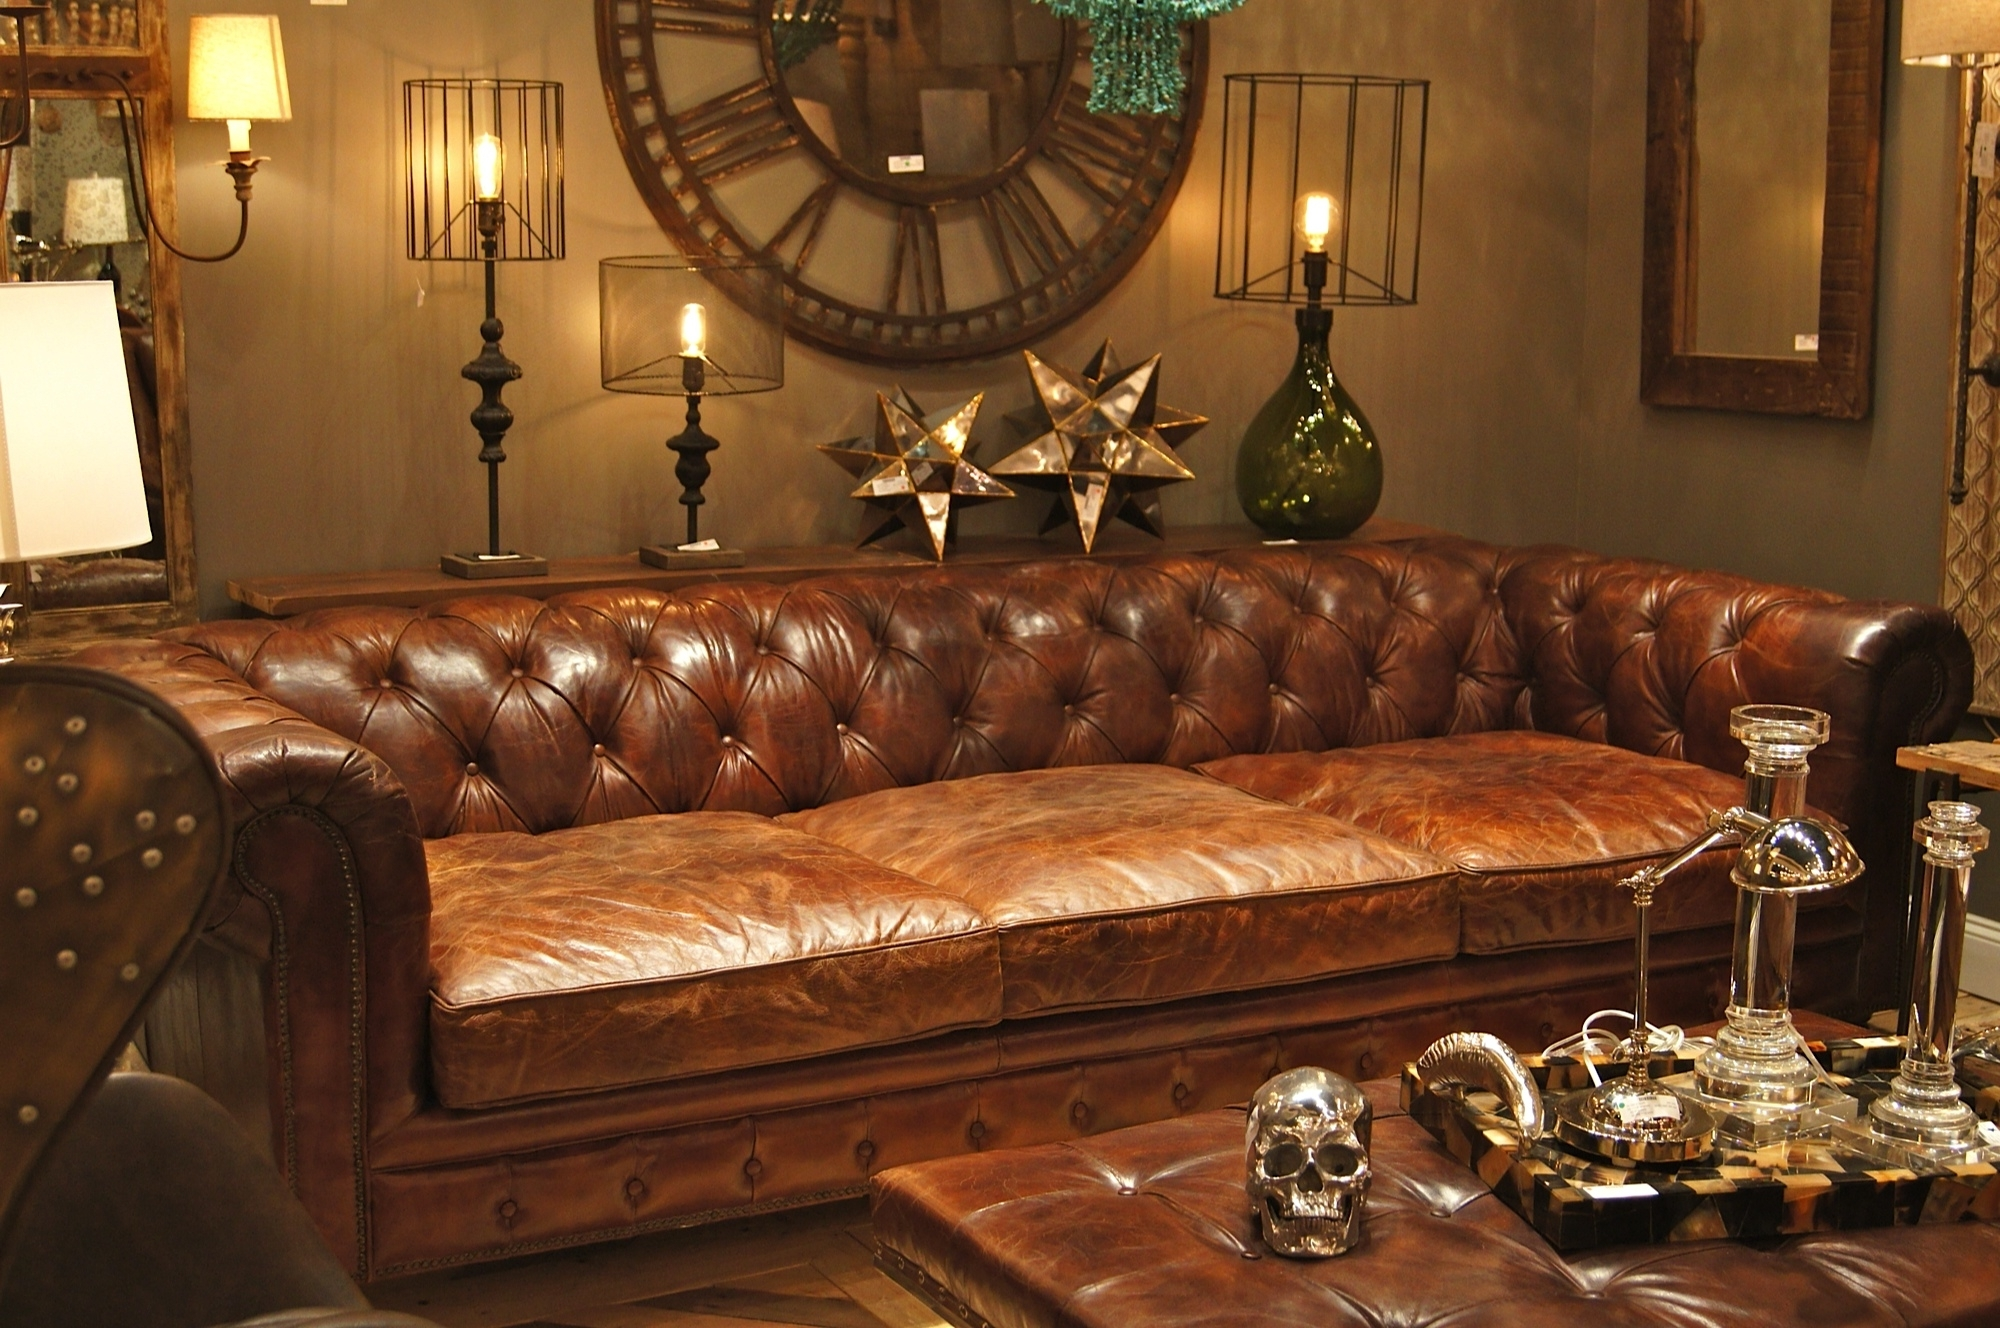 Extra Deep Chesterfield Sofa In Antique Brown Finish Plus Tufted Pertaining To Recent Deep Cushion Sofas (View 7 of 15)